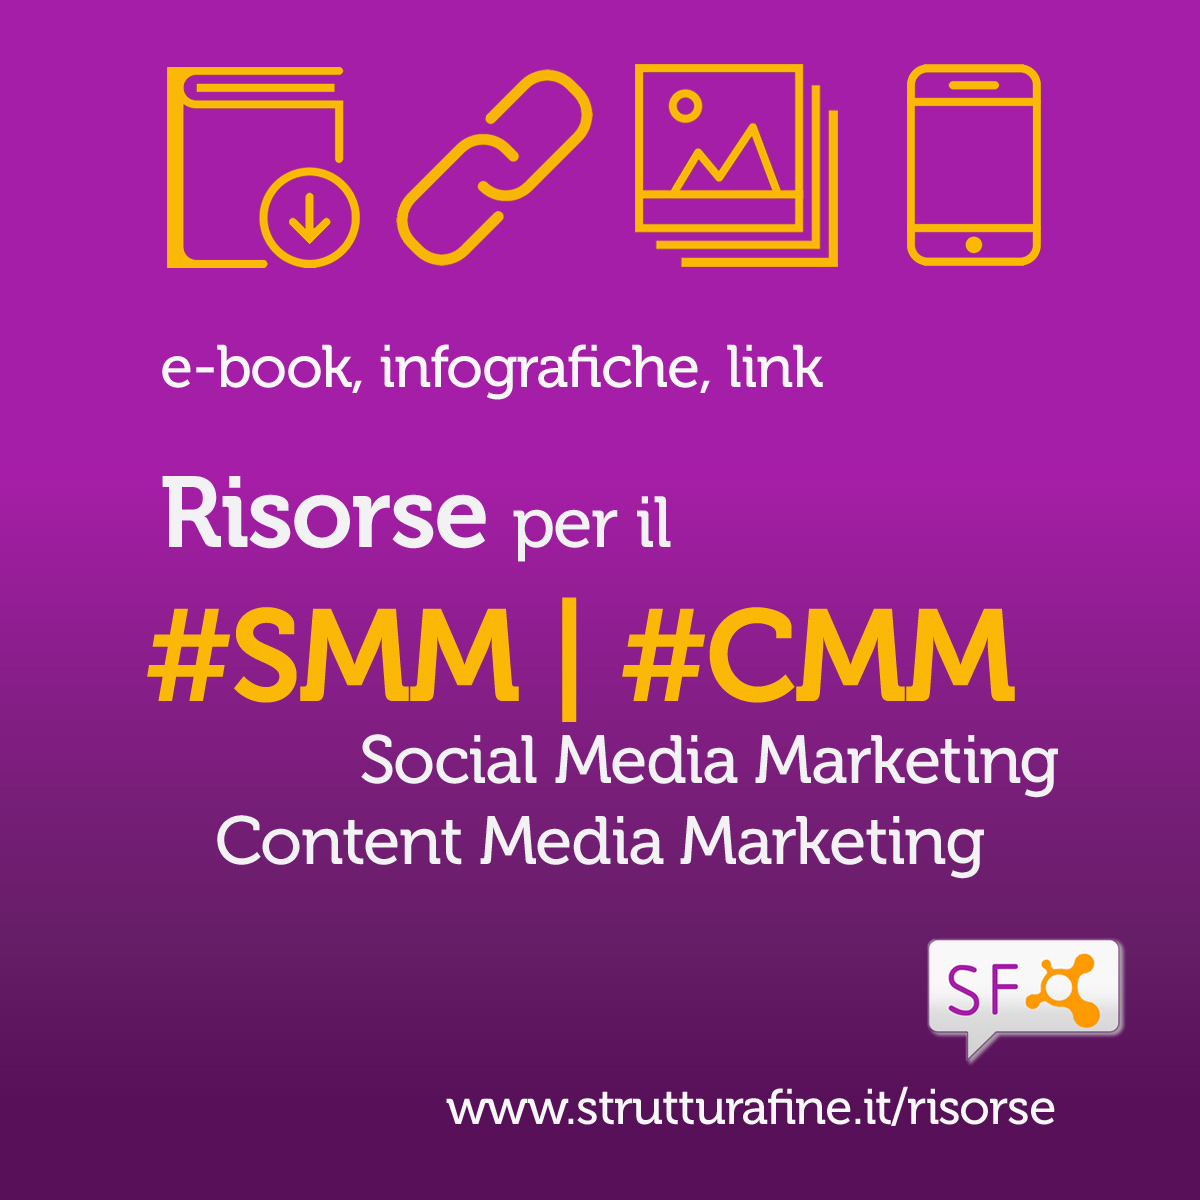 Risorse per il Social Media e Content Media Marketing | Strutturafine